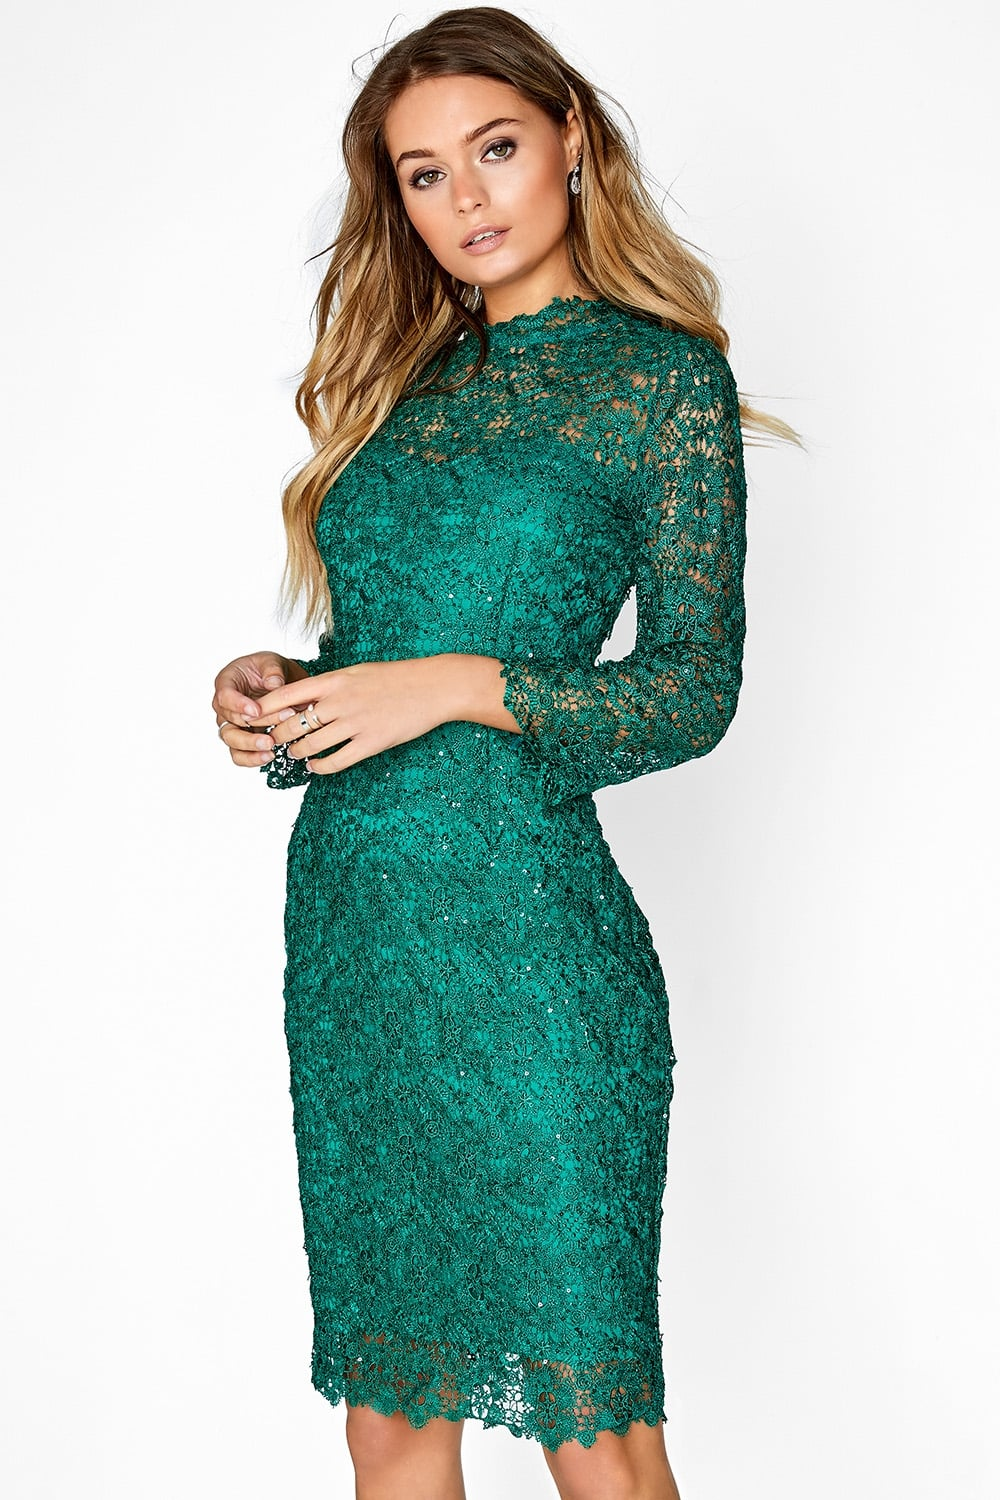 Paper Dolls Jade Green Lace Dress - Paper Dolls from ...